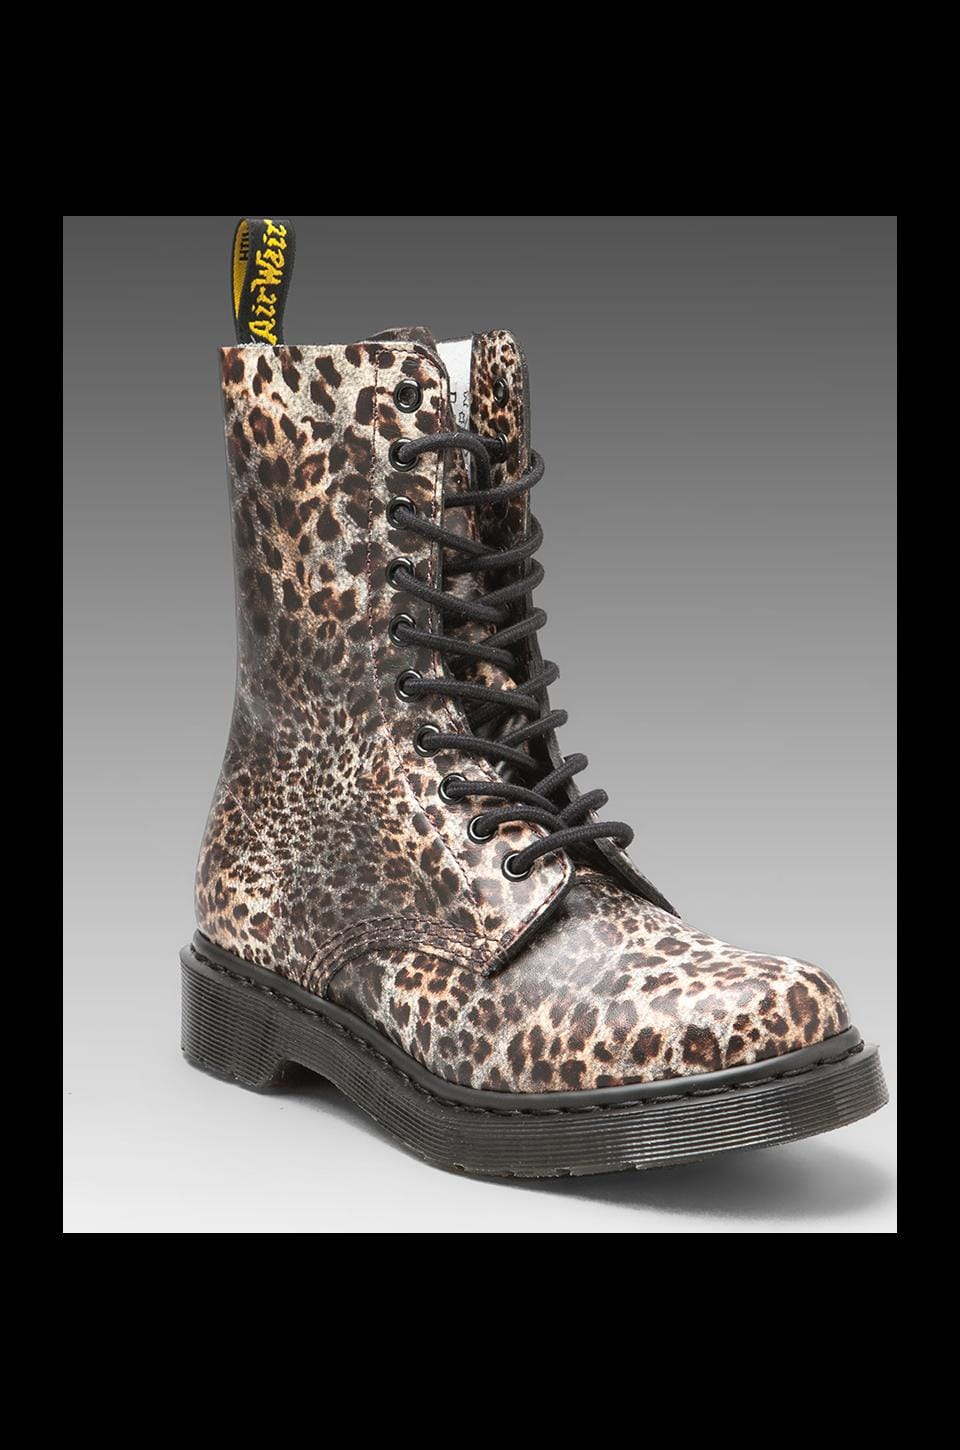 Dr. Martens 1490 10 Eye Boot Print in Leopard